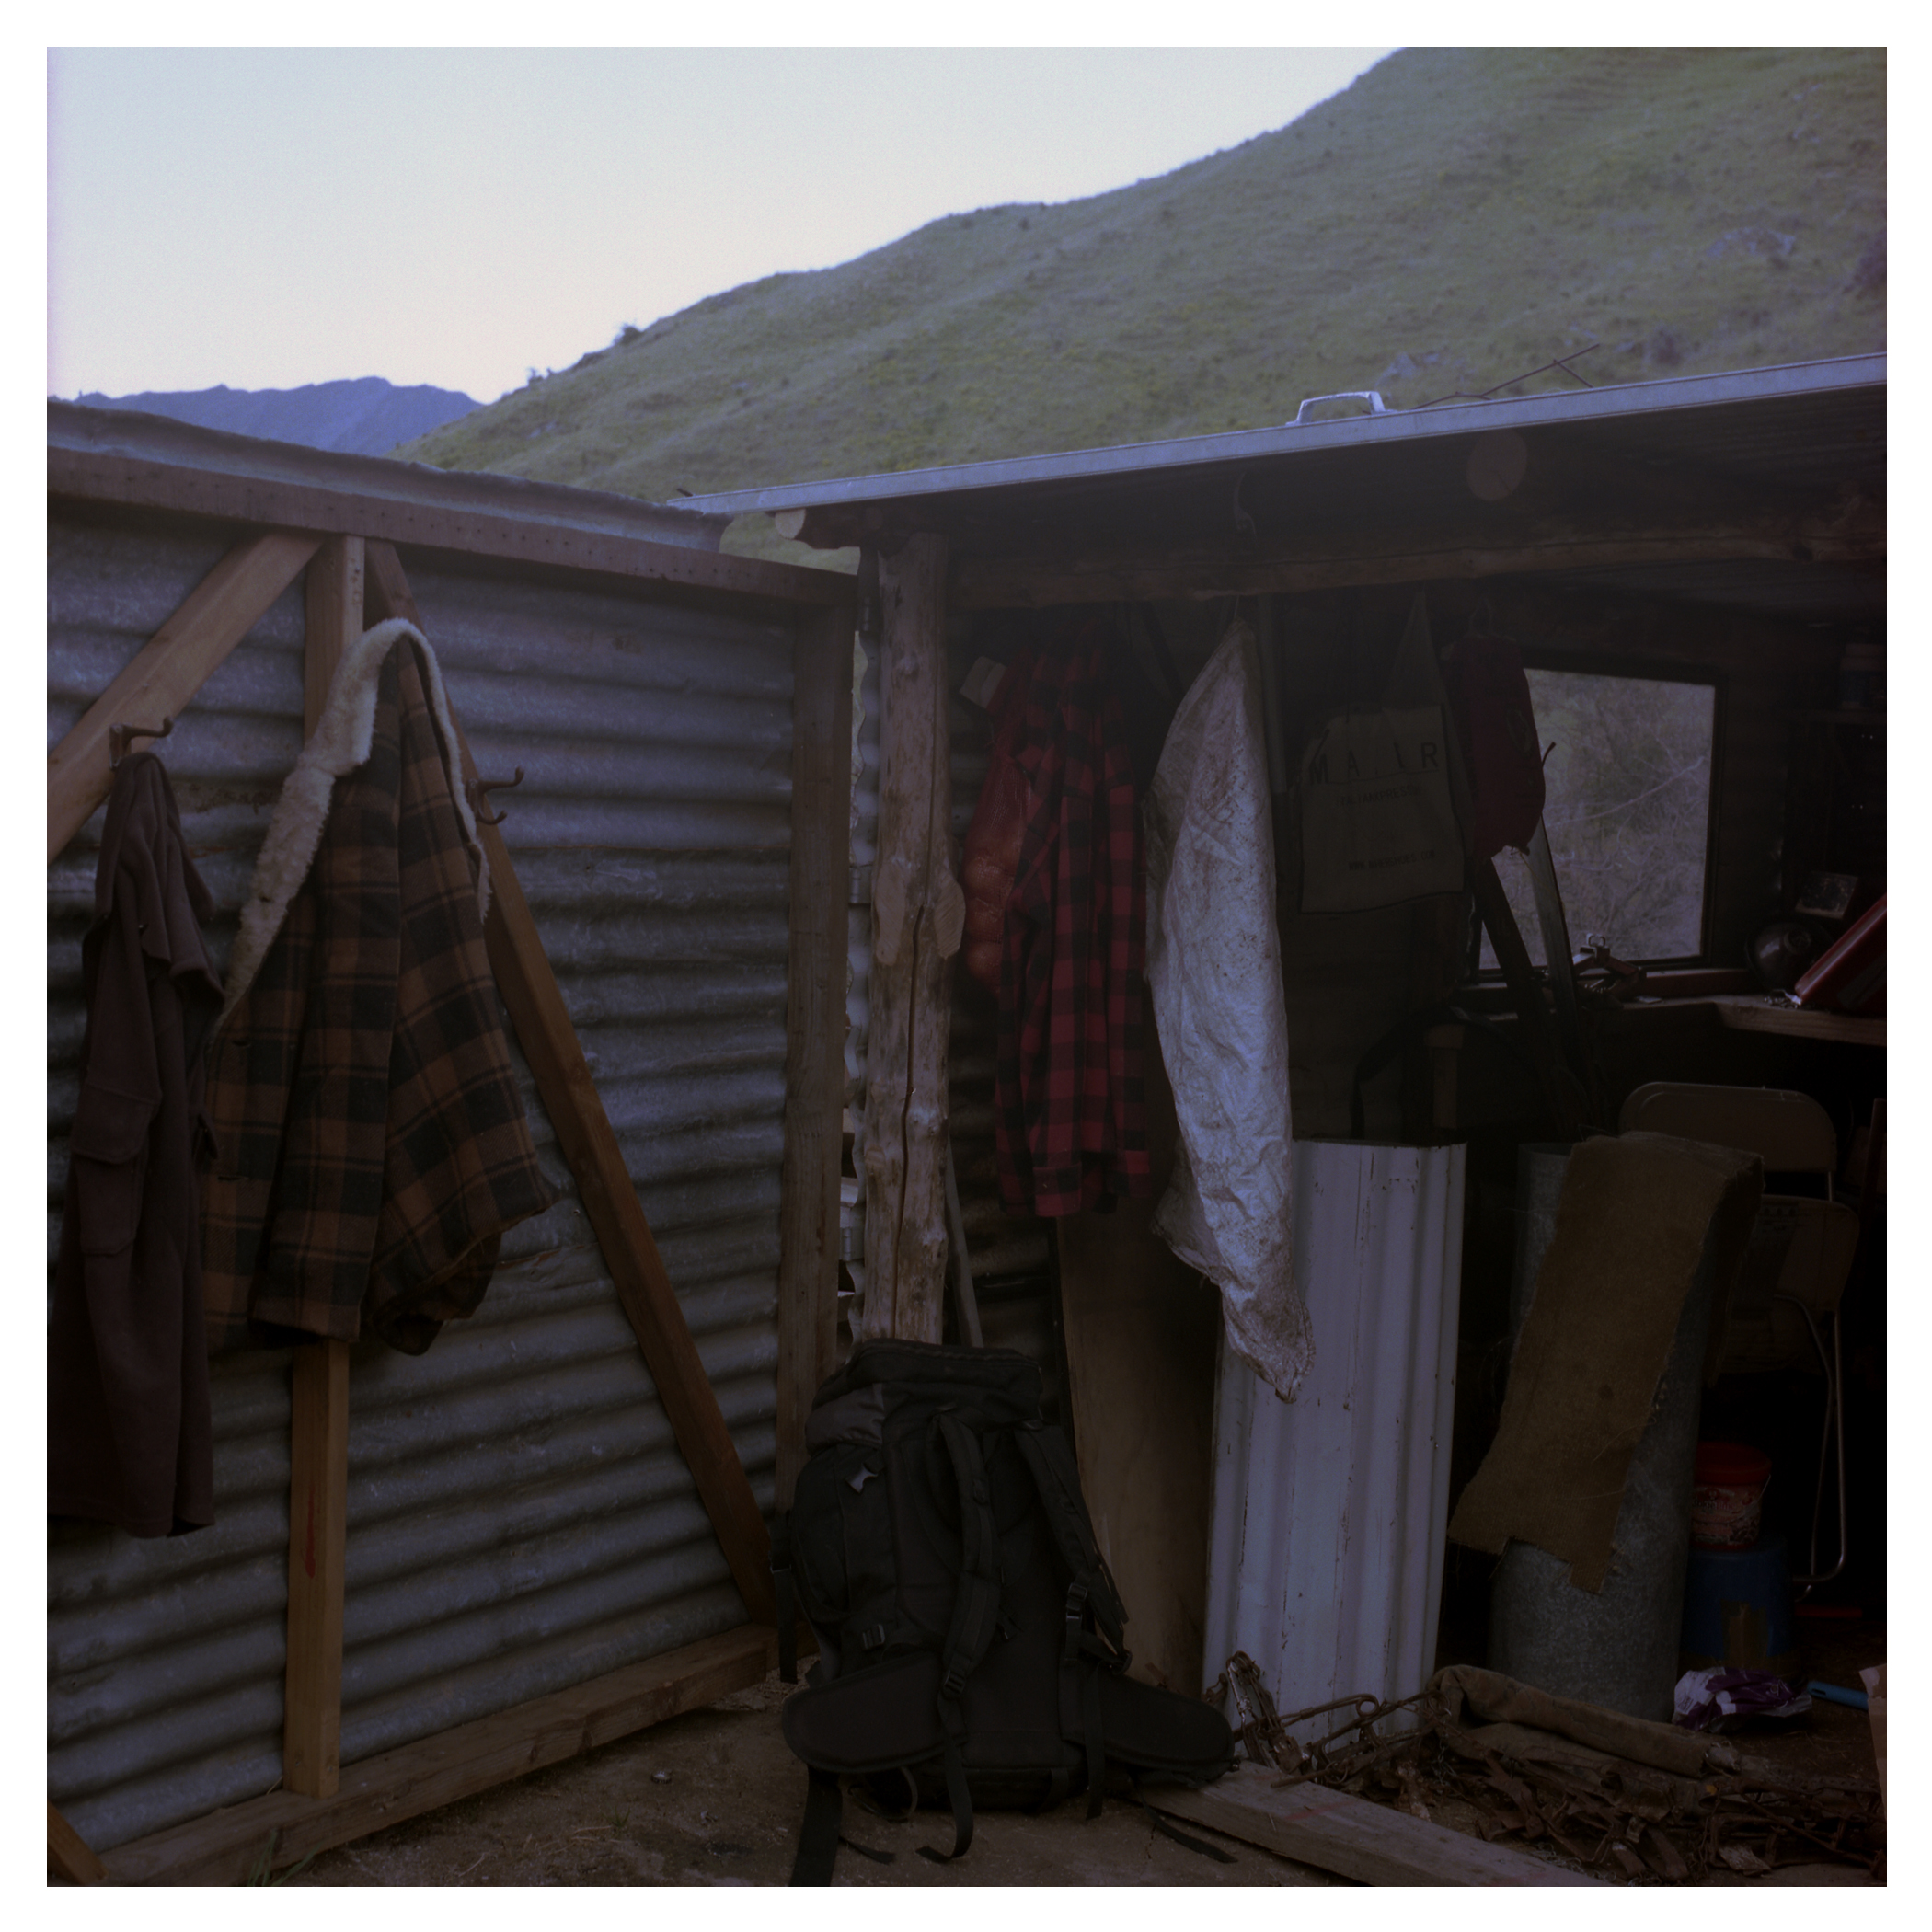 Ty's shed where he keeps his hunting gear and possum traps.